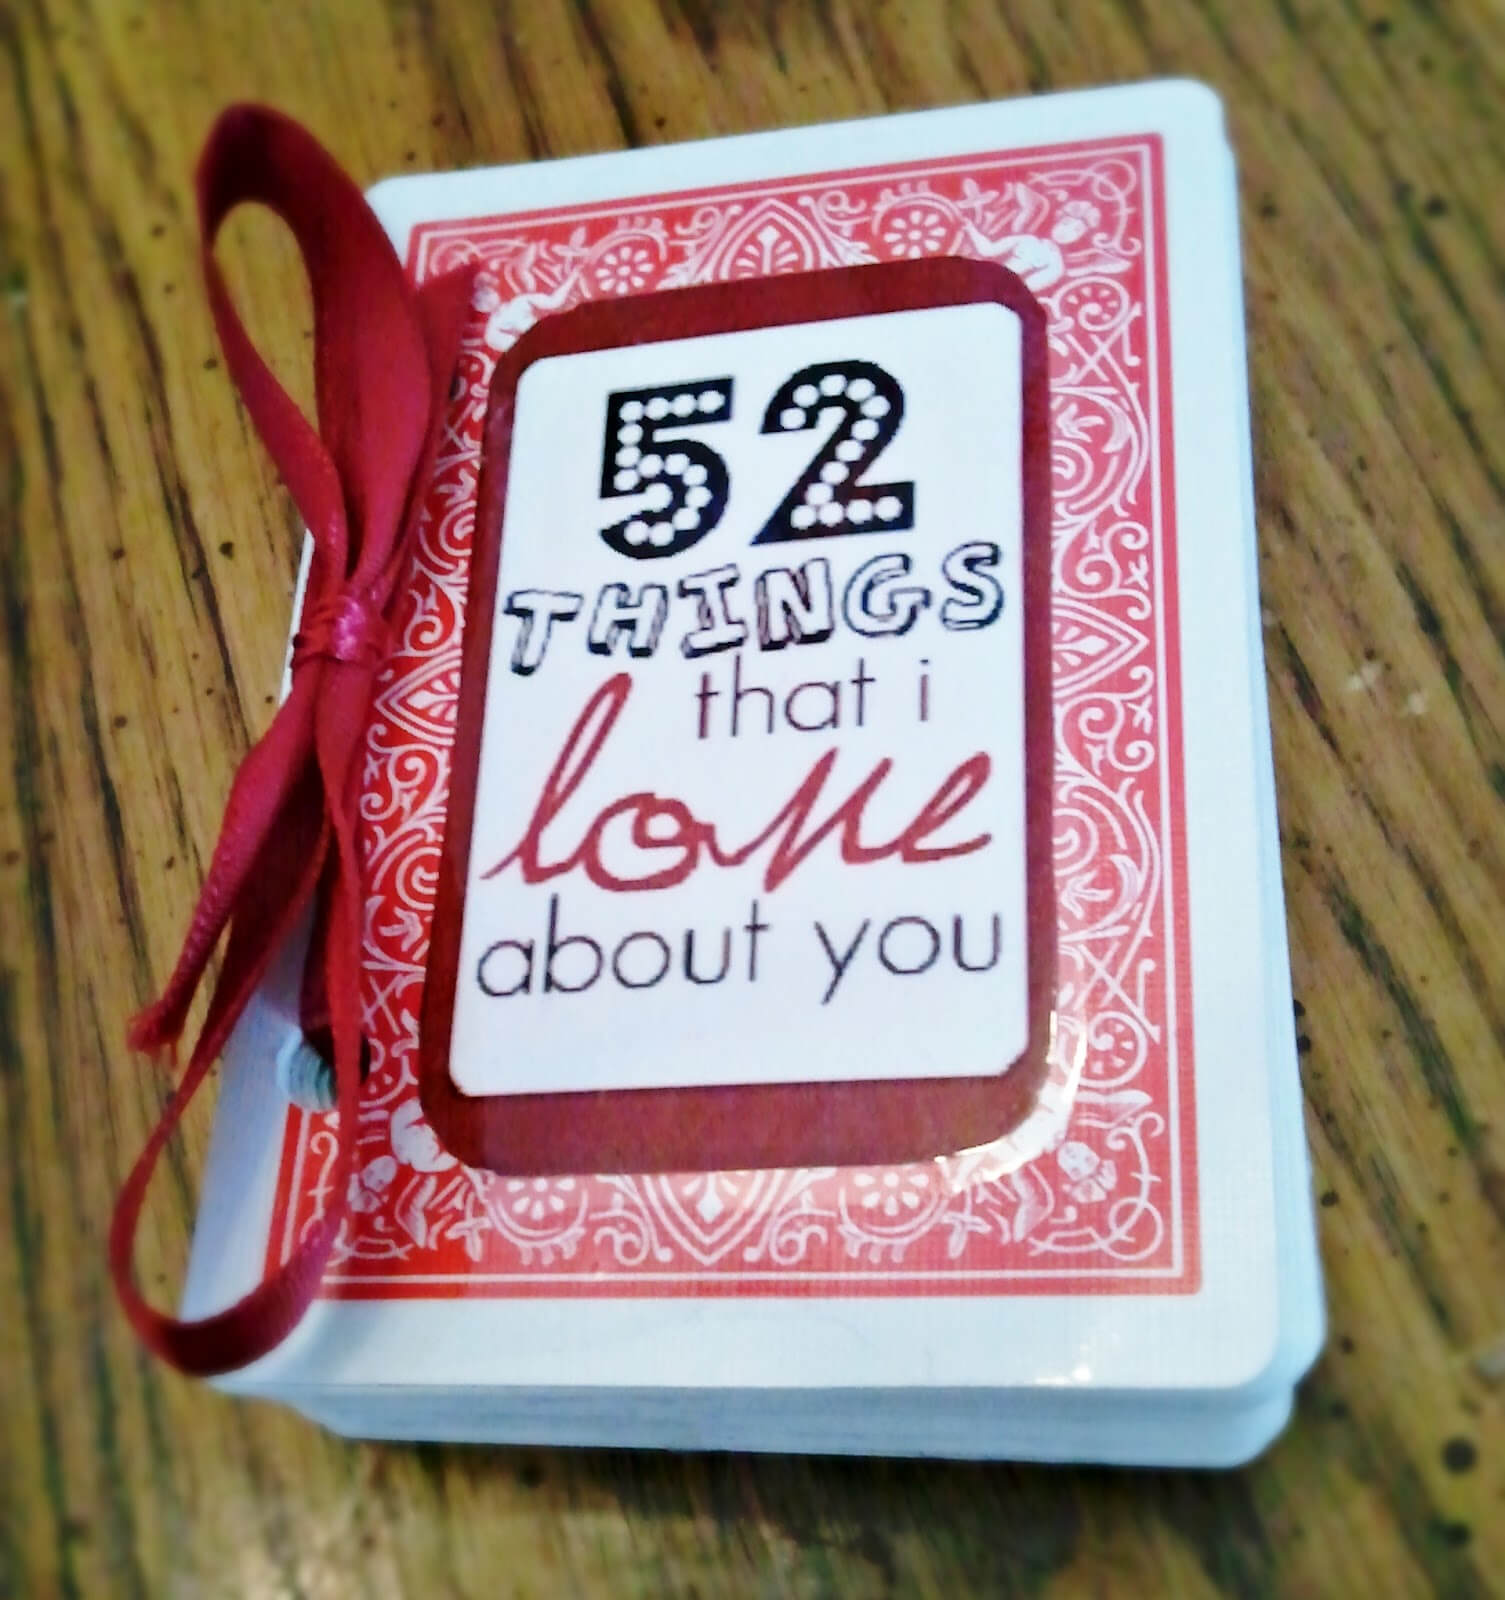 On A Cold Day: 52 Things I Love About You In 52 Things I Love About You Deck Of Cards Template